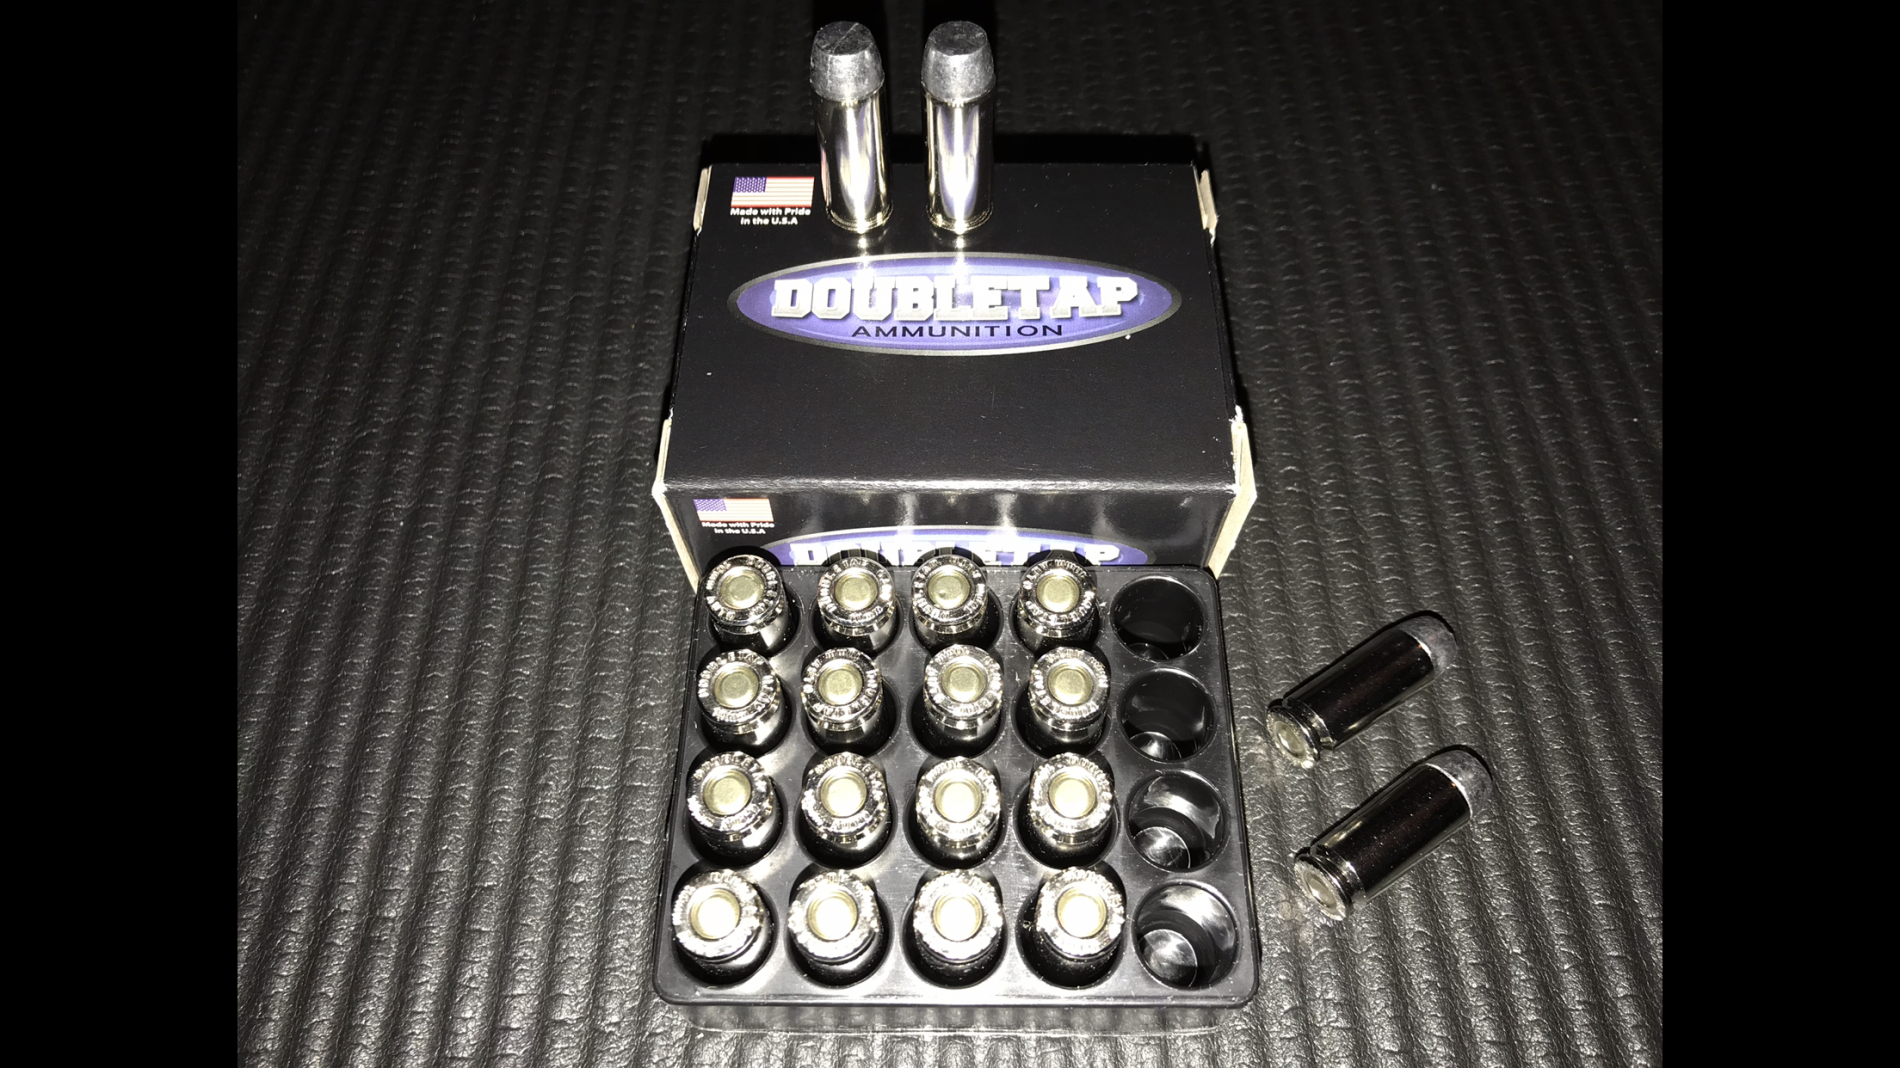 Most reliable and efficient ammo for use in a 9mm and 10mm